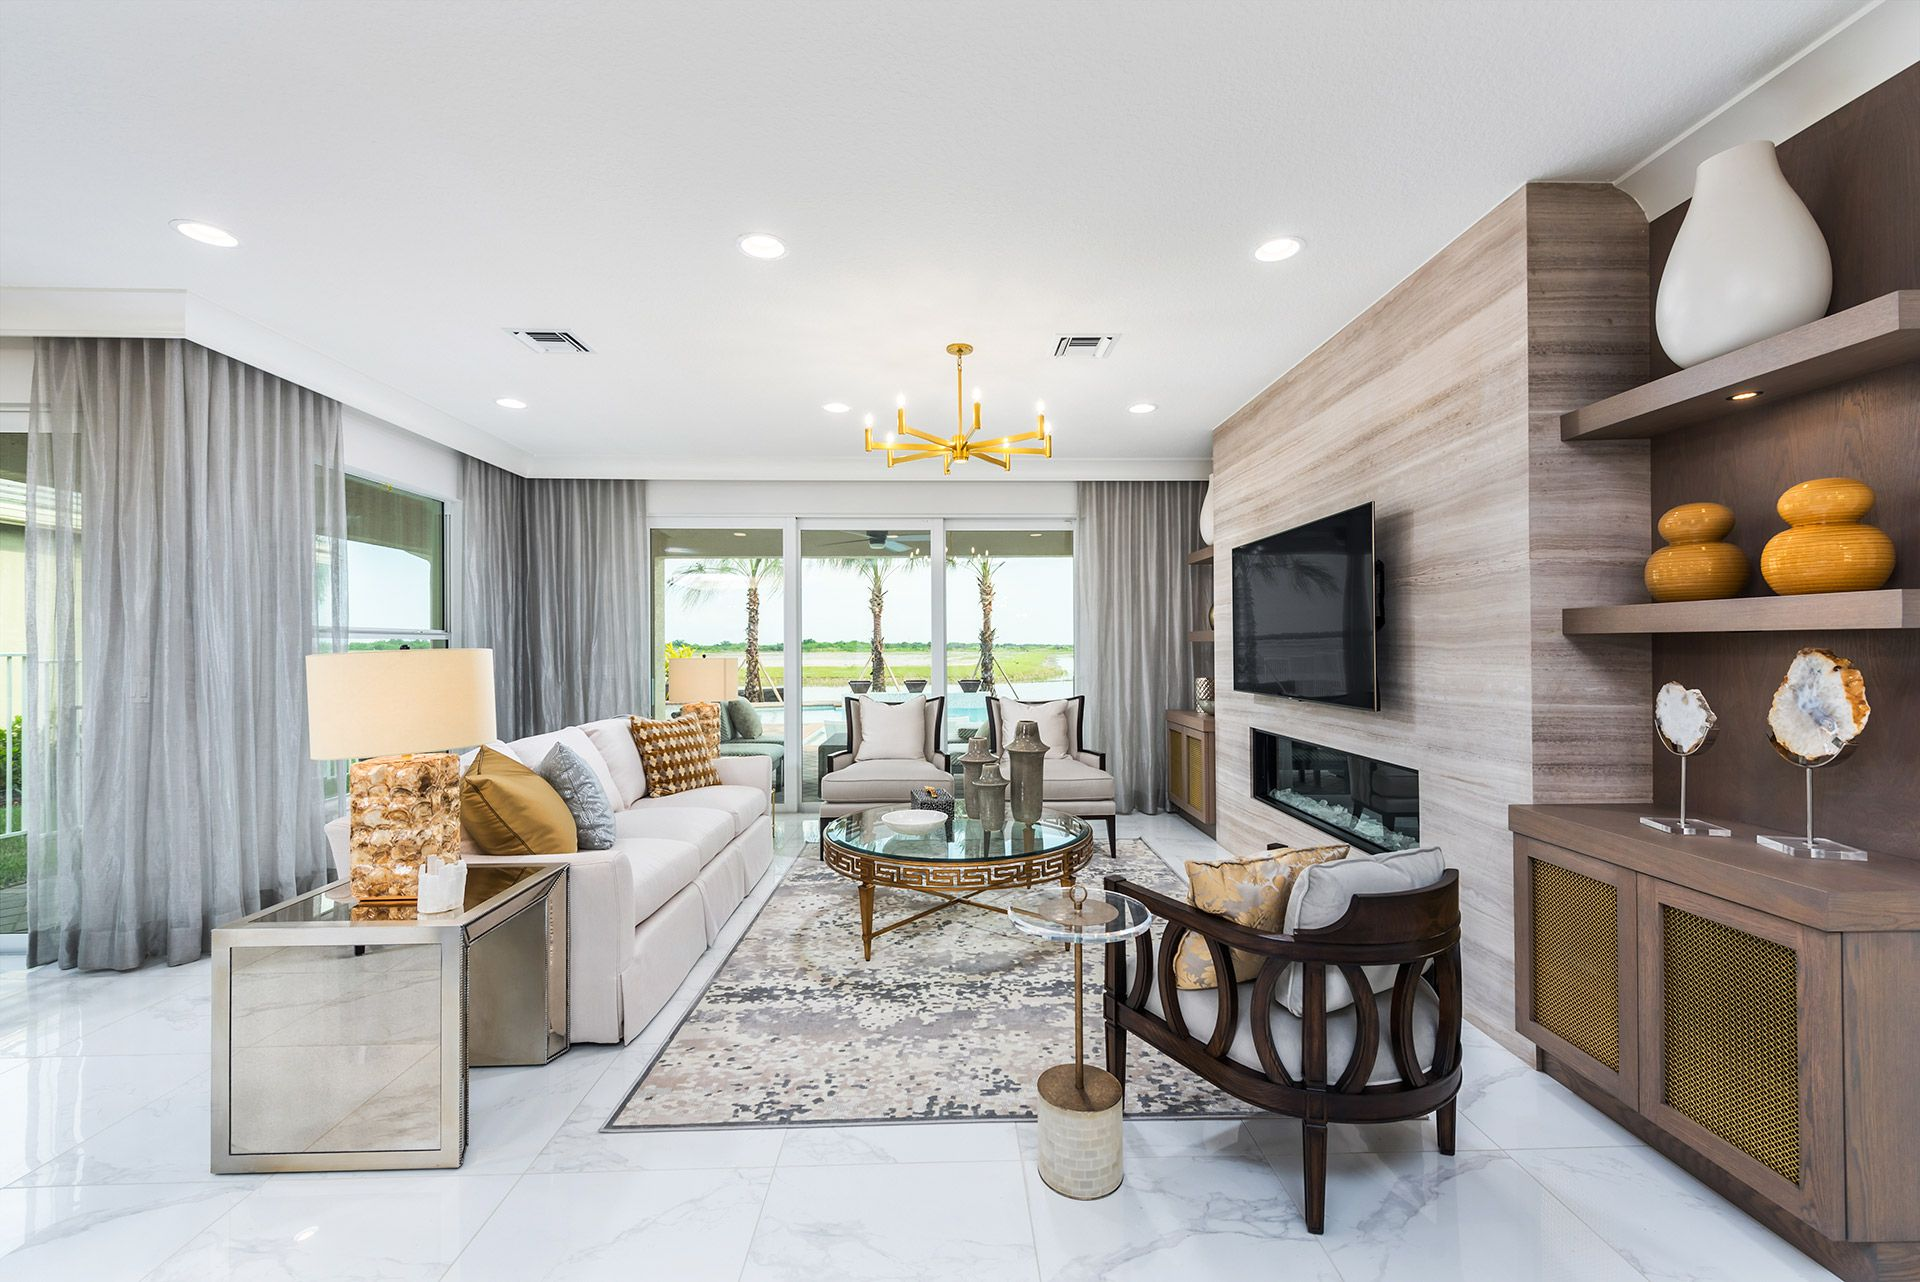 Living Area featured in the Bimini By GL Homes in Martin-St. Lucie-Okeechobee Counties, FL